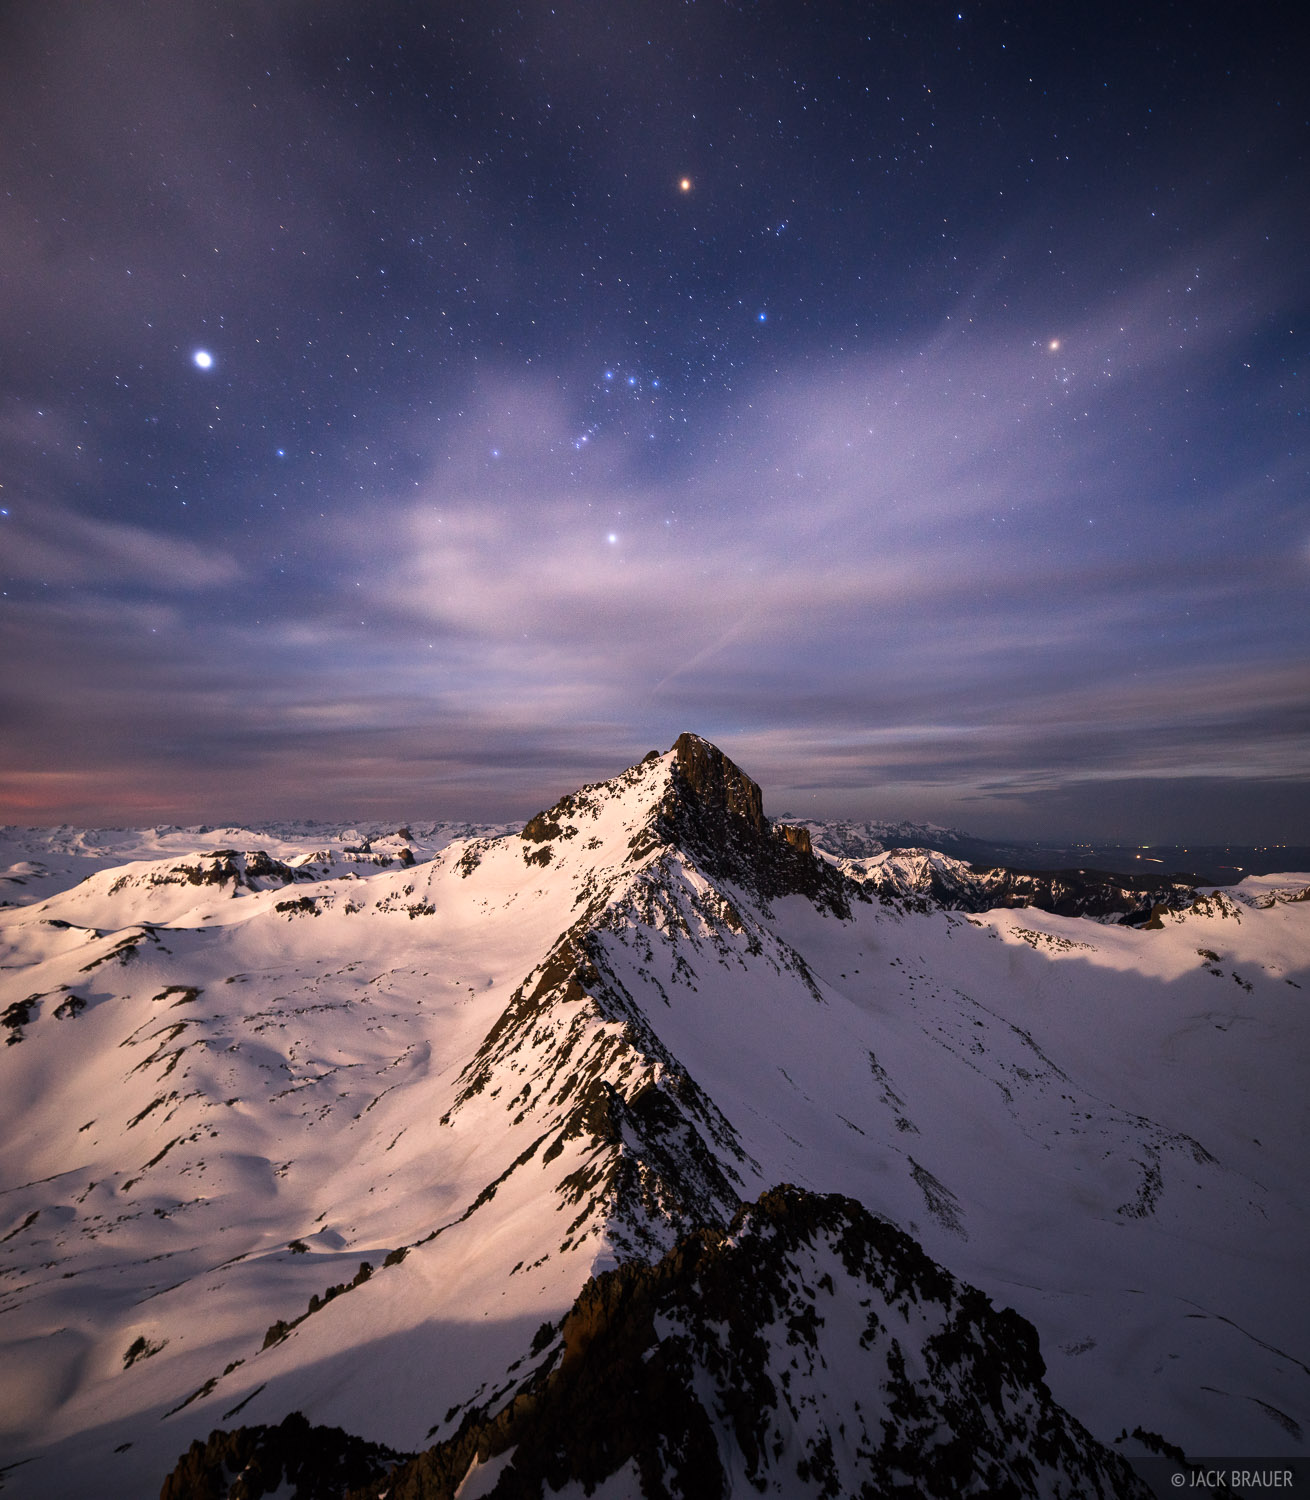 Colorado, San Juan Mountains, Uncompahgre Wilderness, Wetterhorn Peak, Matterhorn Peak, stars, moonlight, photo